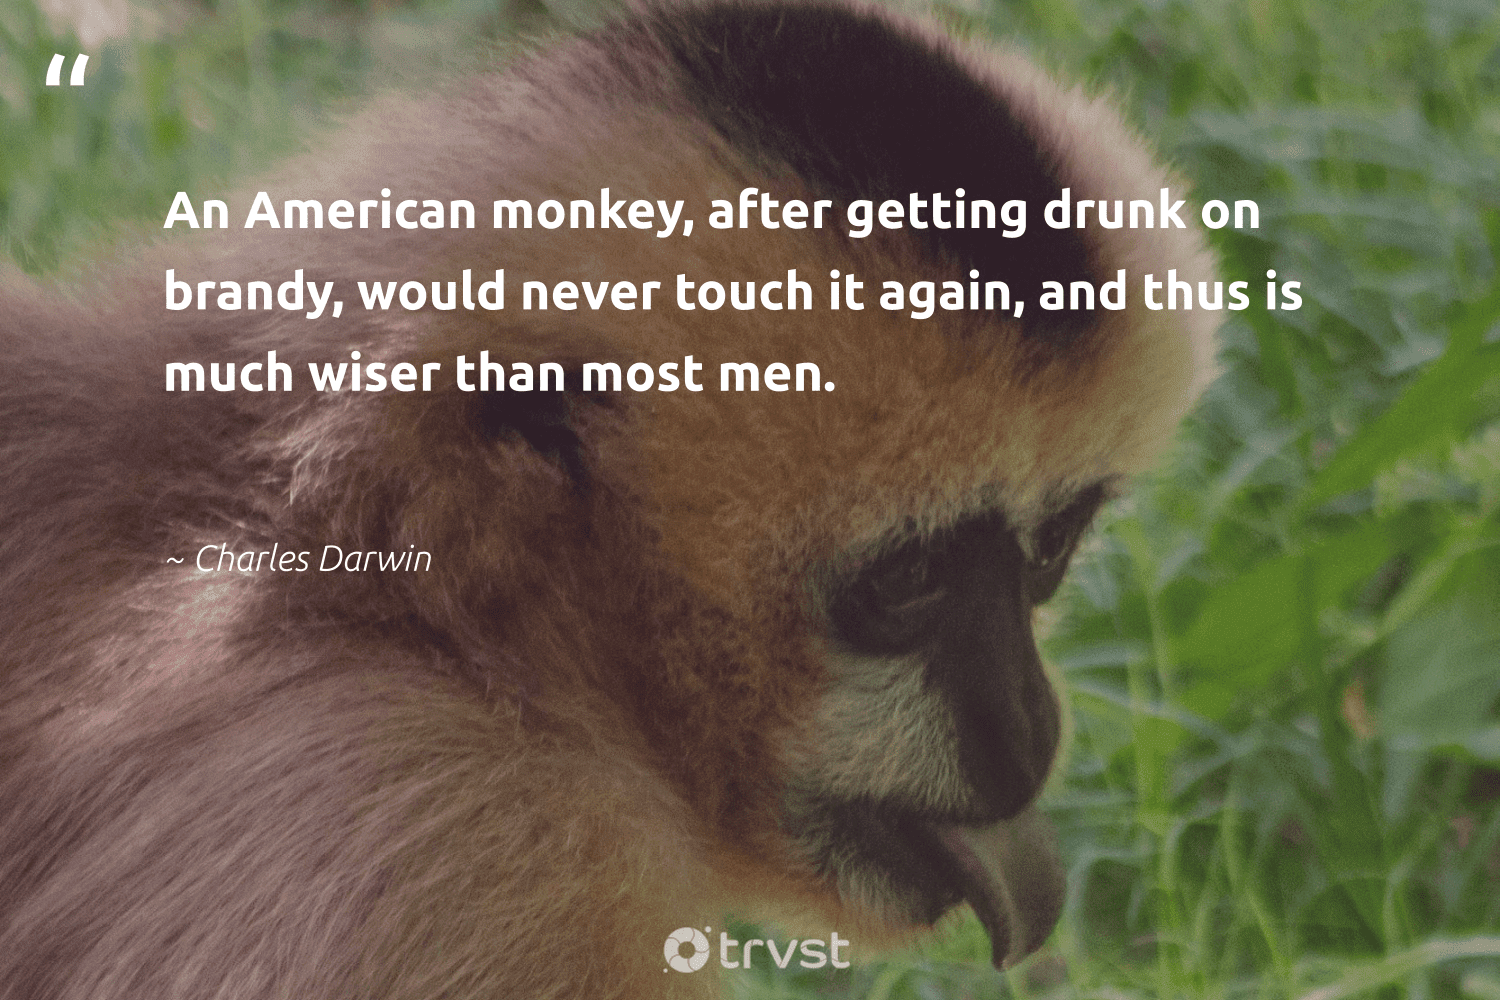 """""""An American monkey, after getting drunk on brandy, would never touch it again, and thus is much wiser than most men.""""  - Charles Darwin #trvst #quotes #monkey #wild #thinkgreen #animalphotography #impact #splendidanimals #collectiveaction #wildlifeprotection #bethechange #majesticwildlife"""